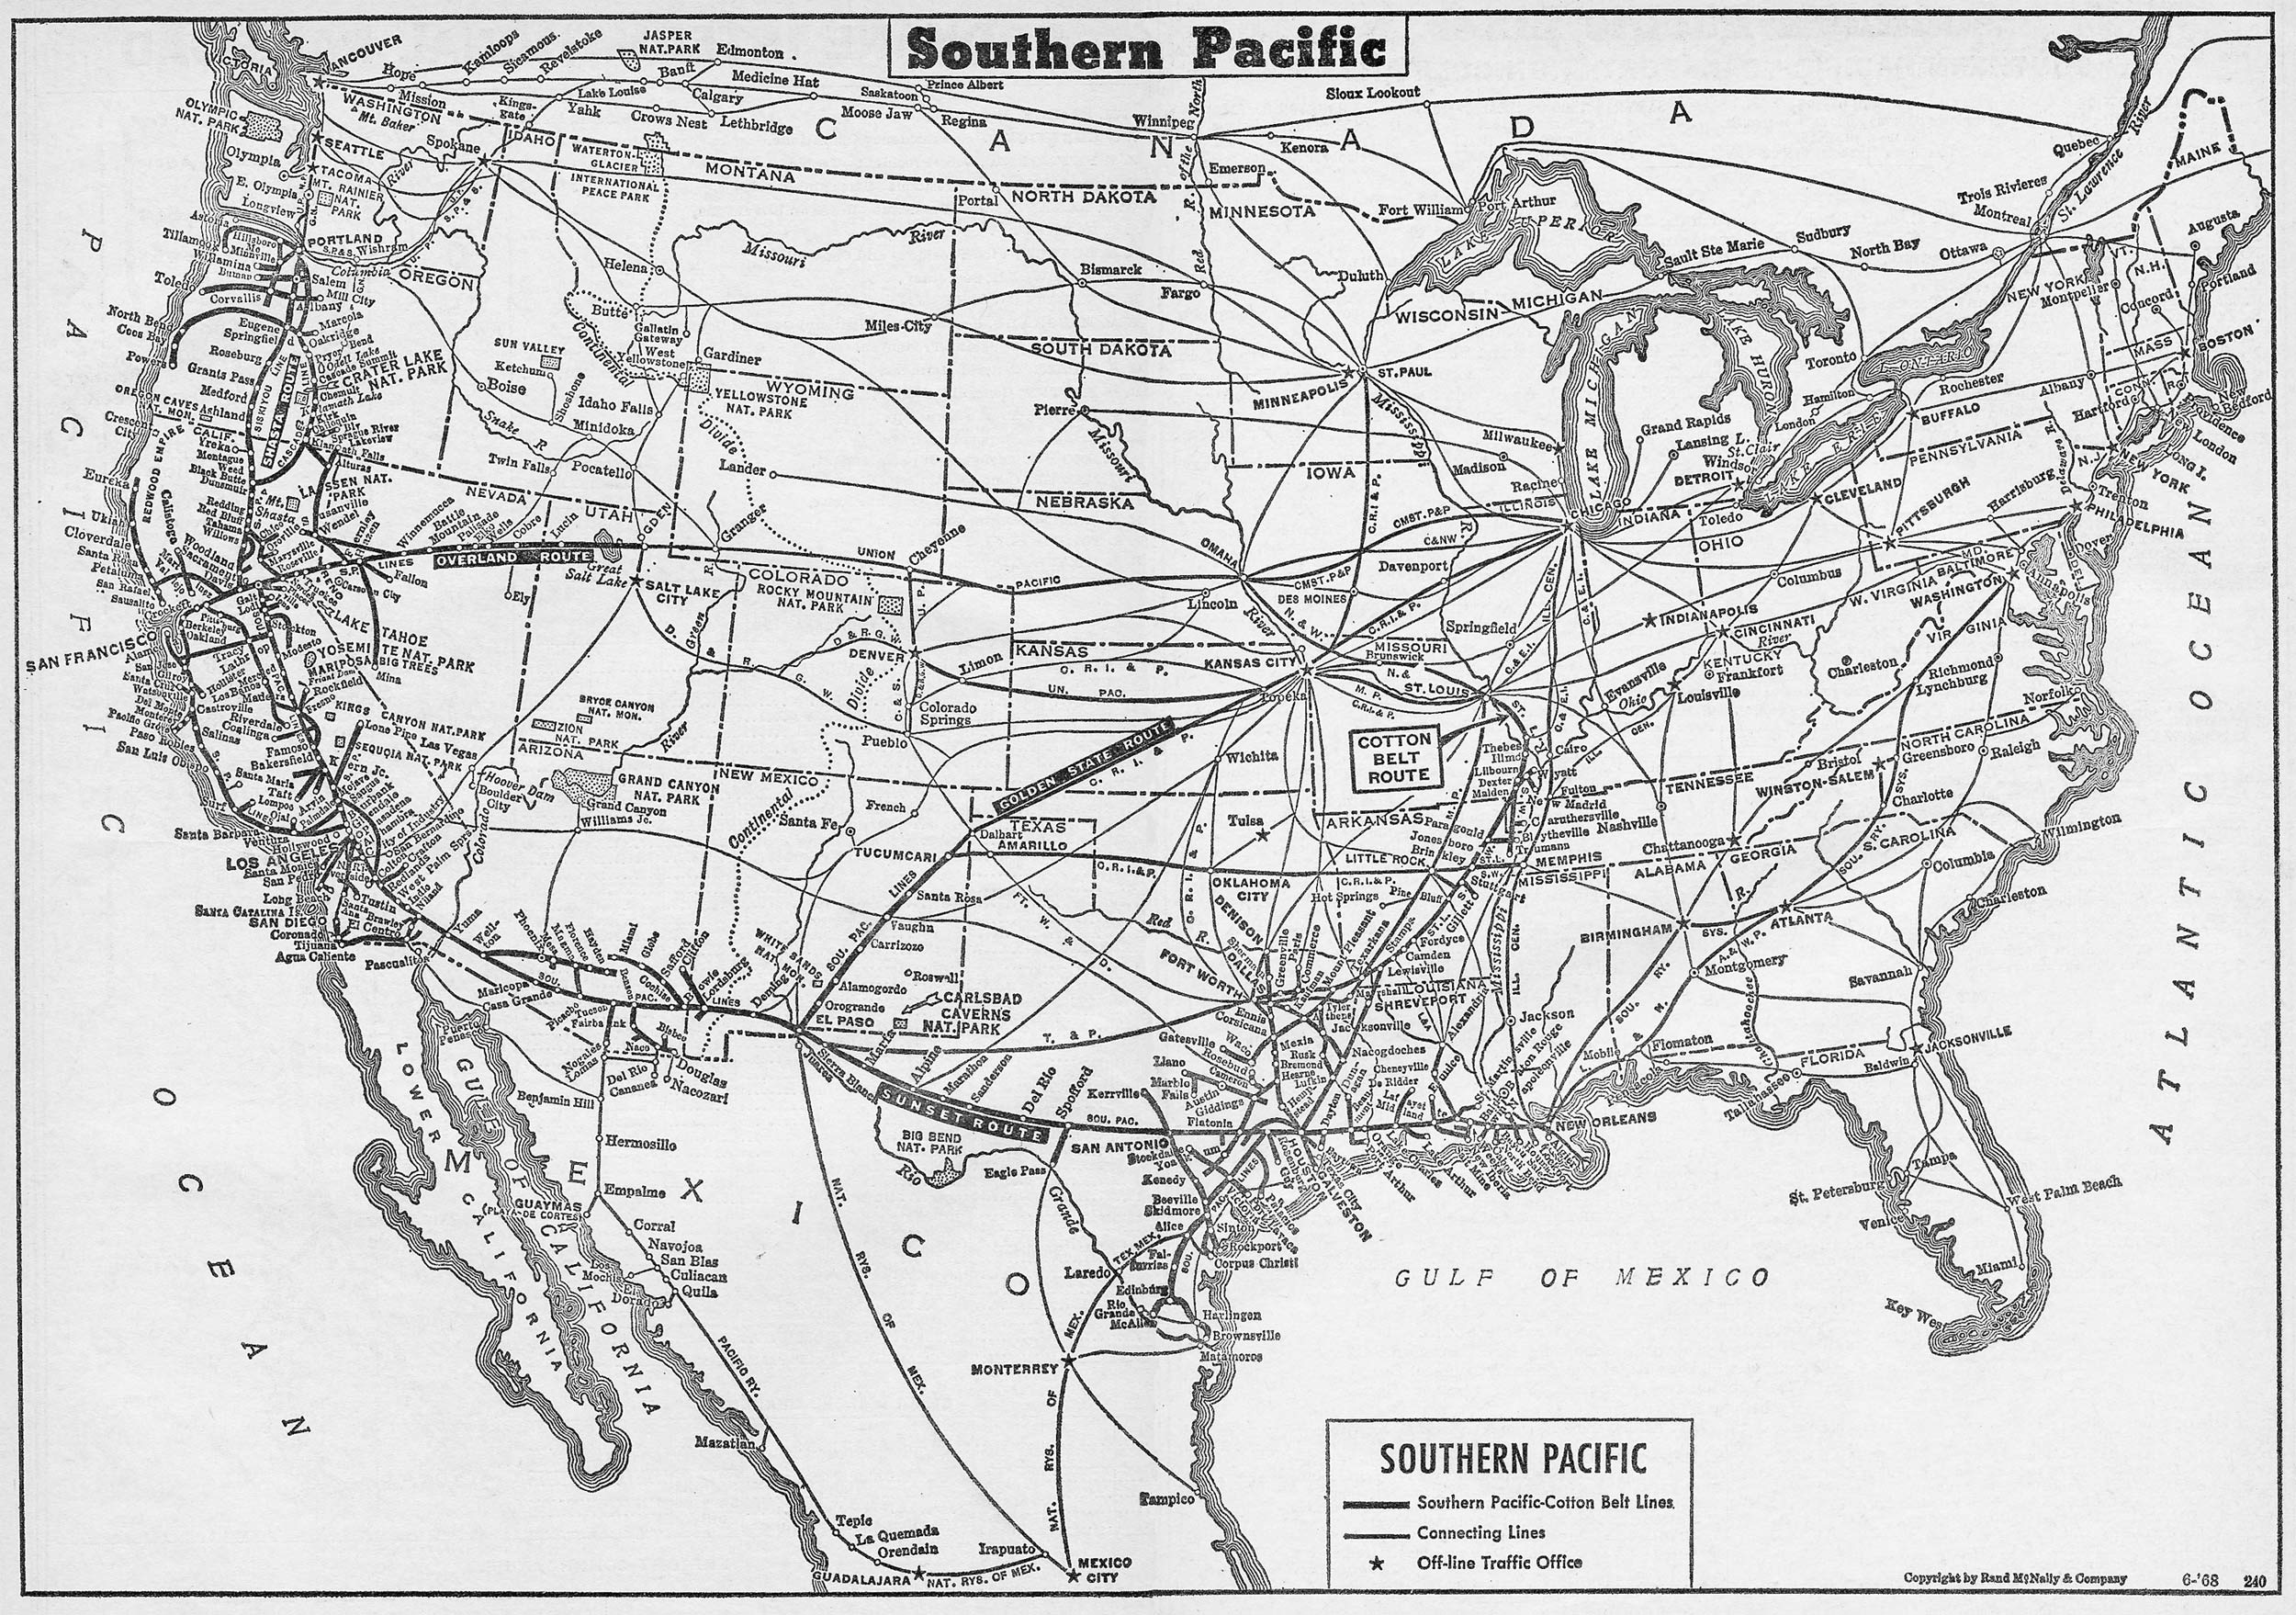 Southern Pacific - Railroad